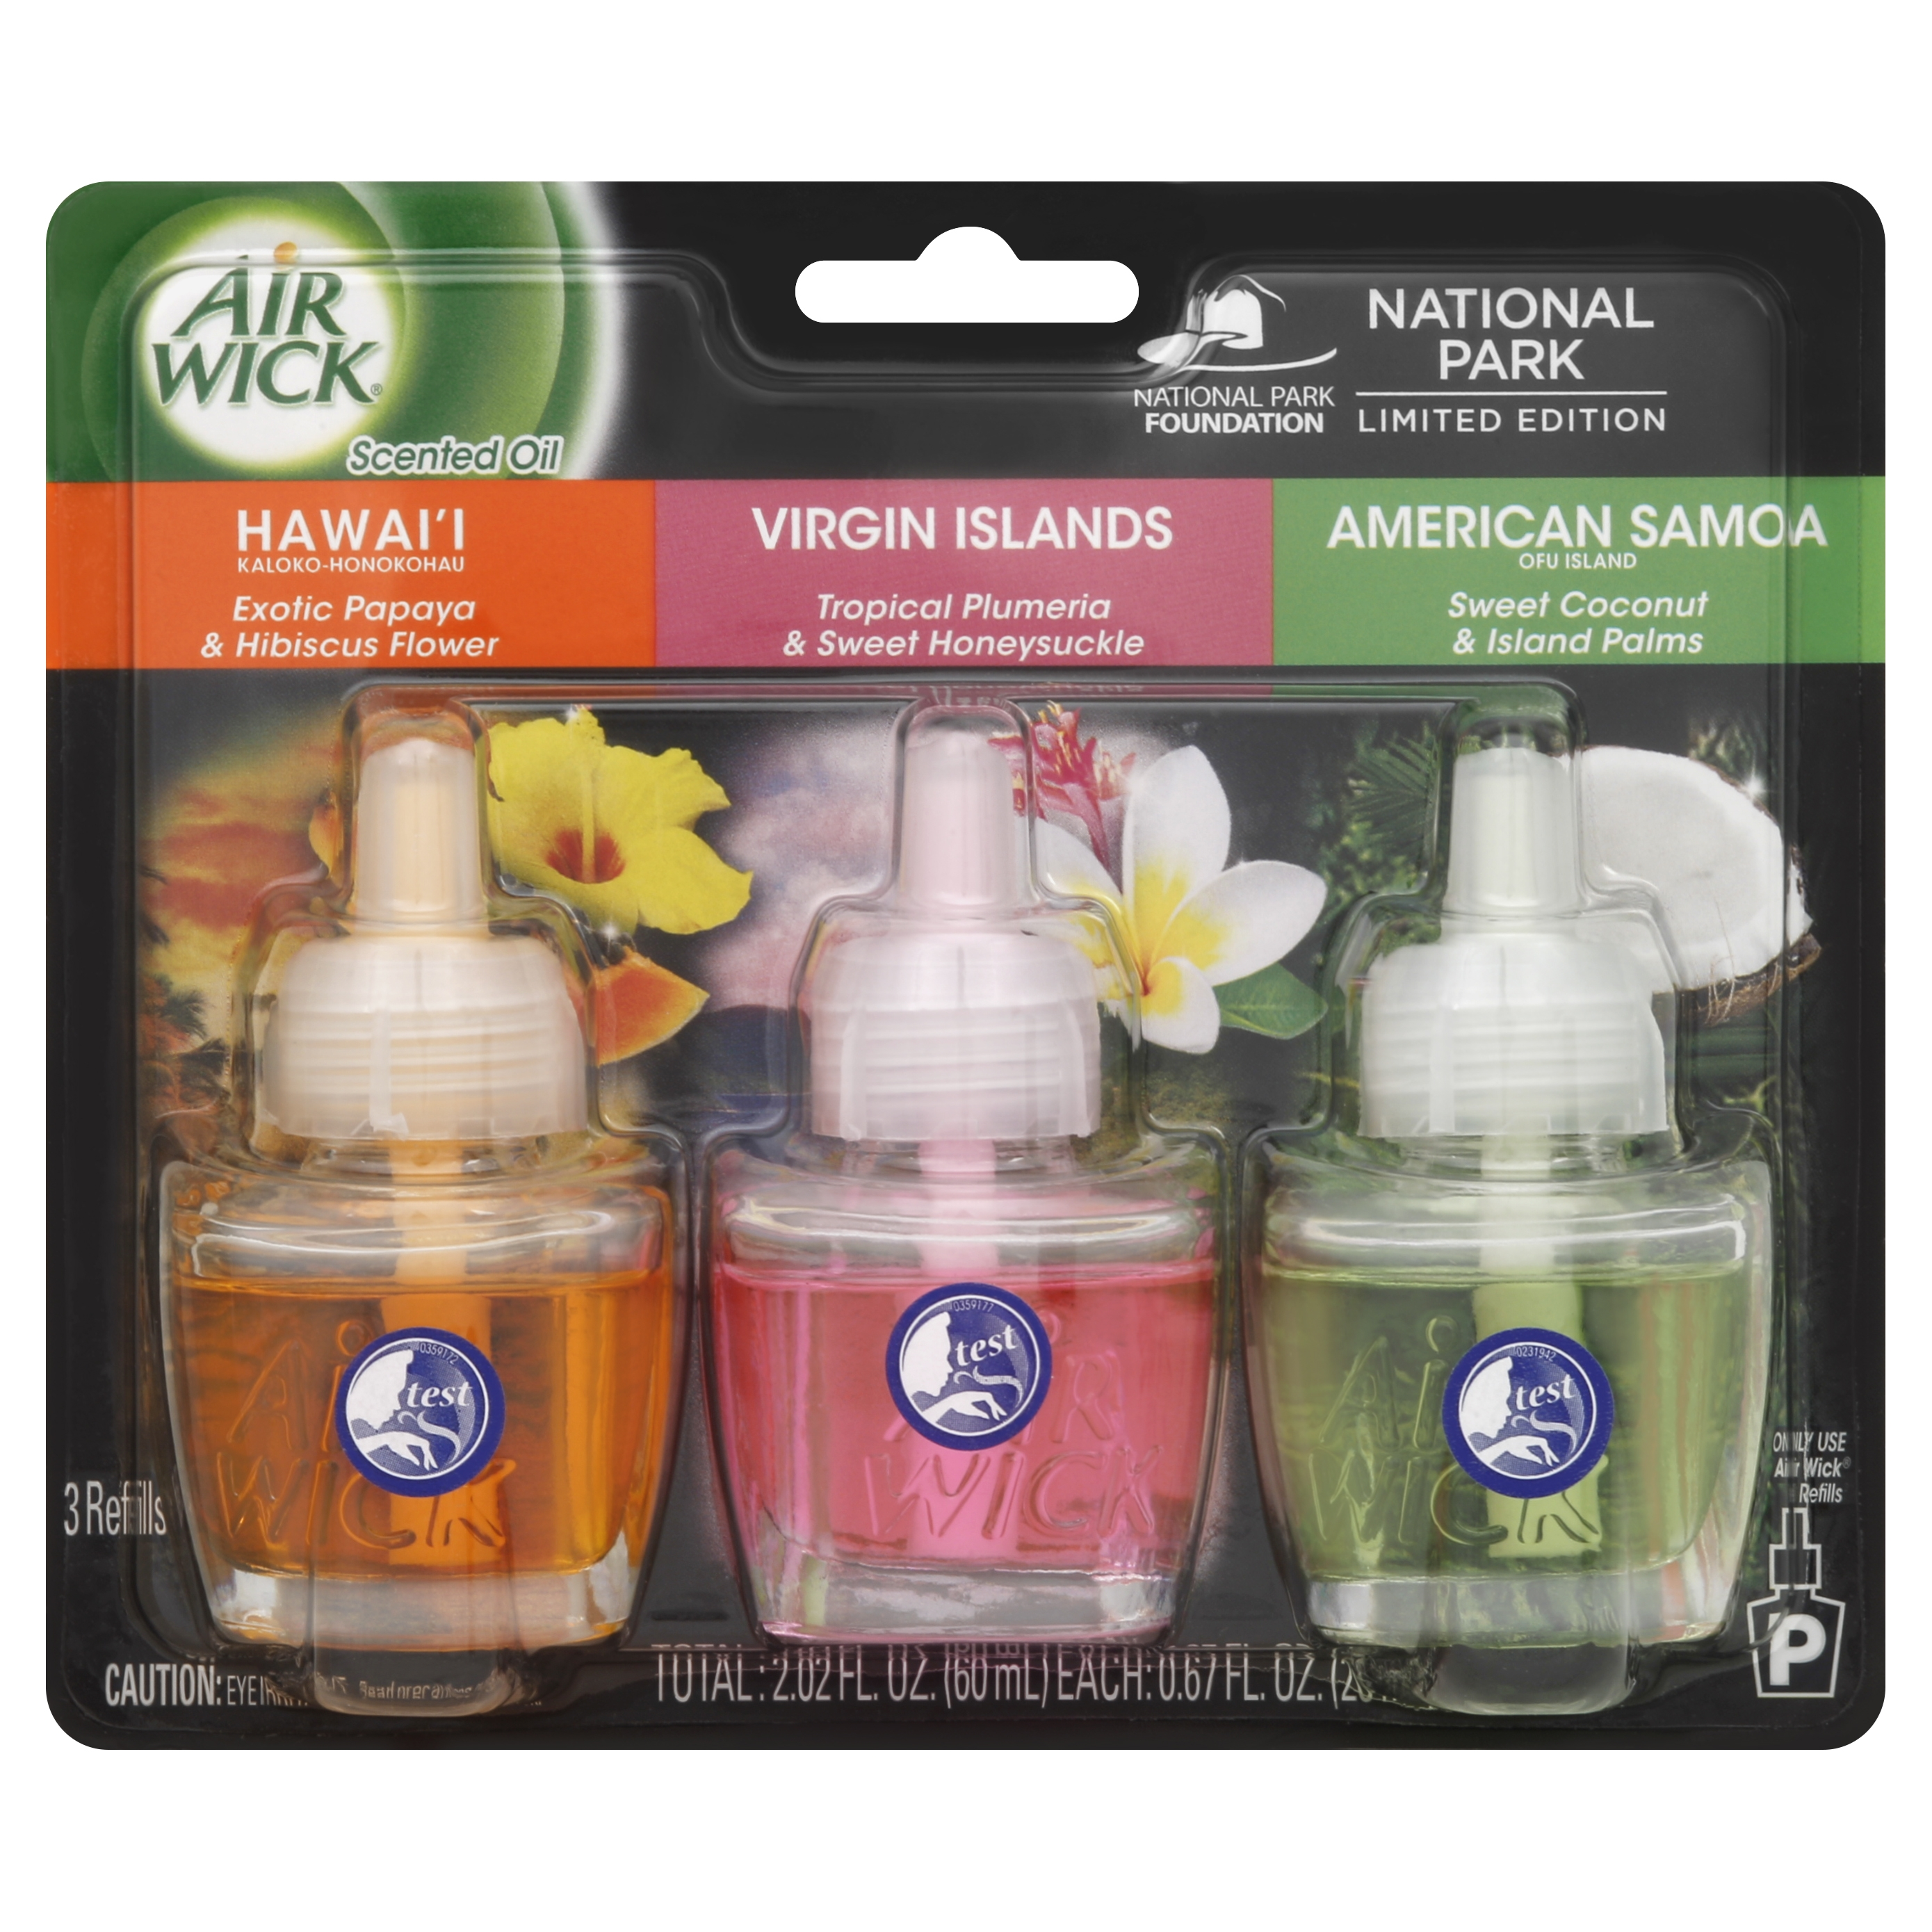 Air Wick Scented Oil Air Freshener, National Park Collection, Hawaii, Virgin Islands Scent, American Samoa, Triple Refill, 0.67 Ounce